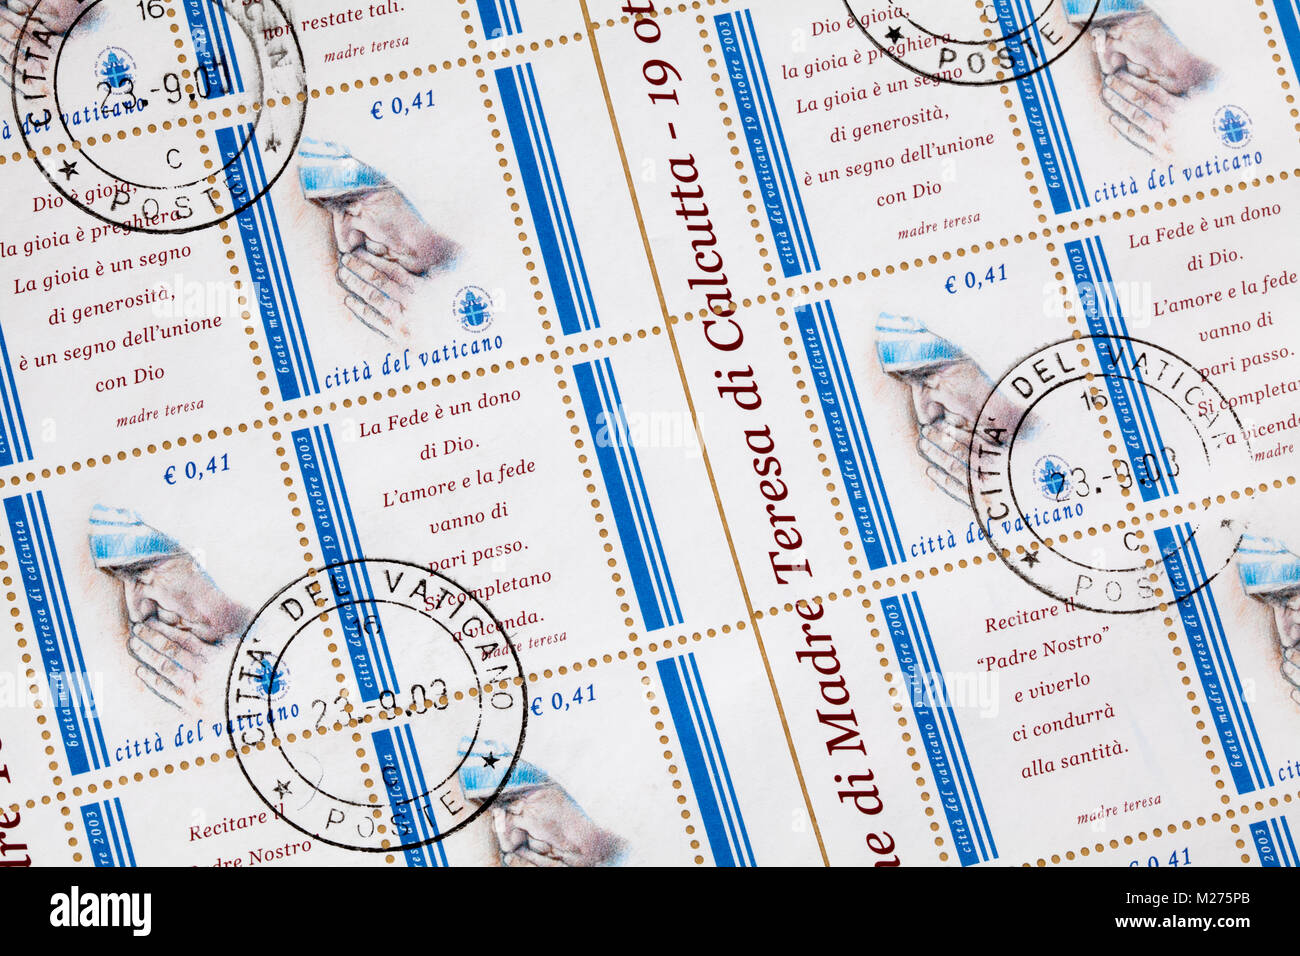 Stamps from the Vatican on a letter, Stamped, Vatican, Italy, Europe, Gestempelte Briefmarken aus dem Vatikan, Mutter - Stock Image